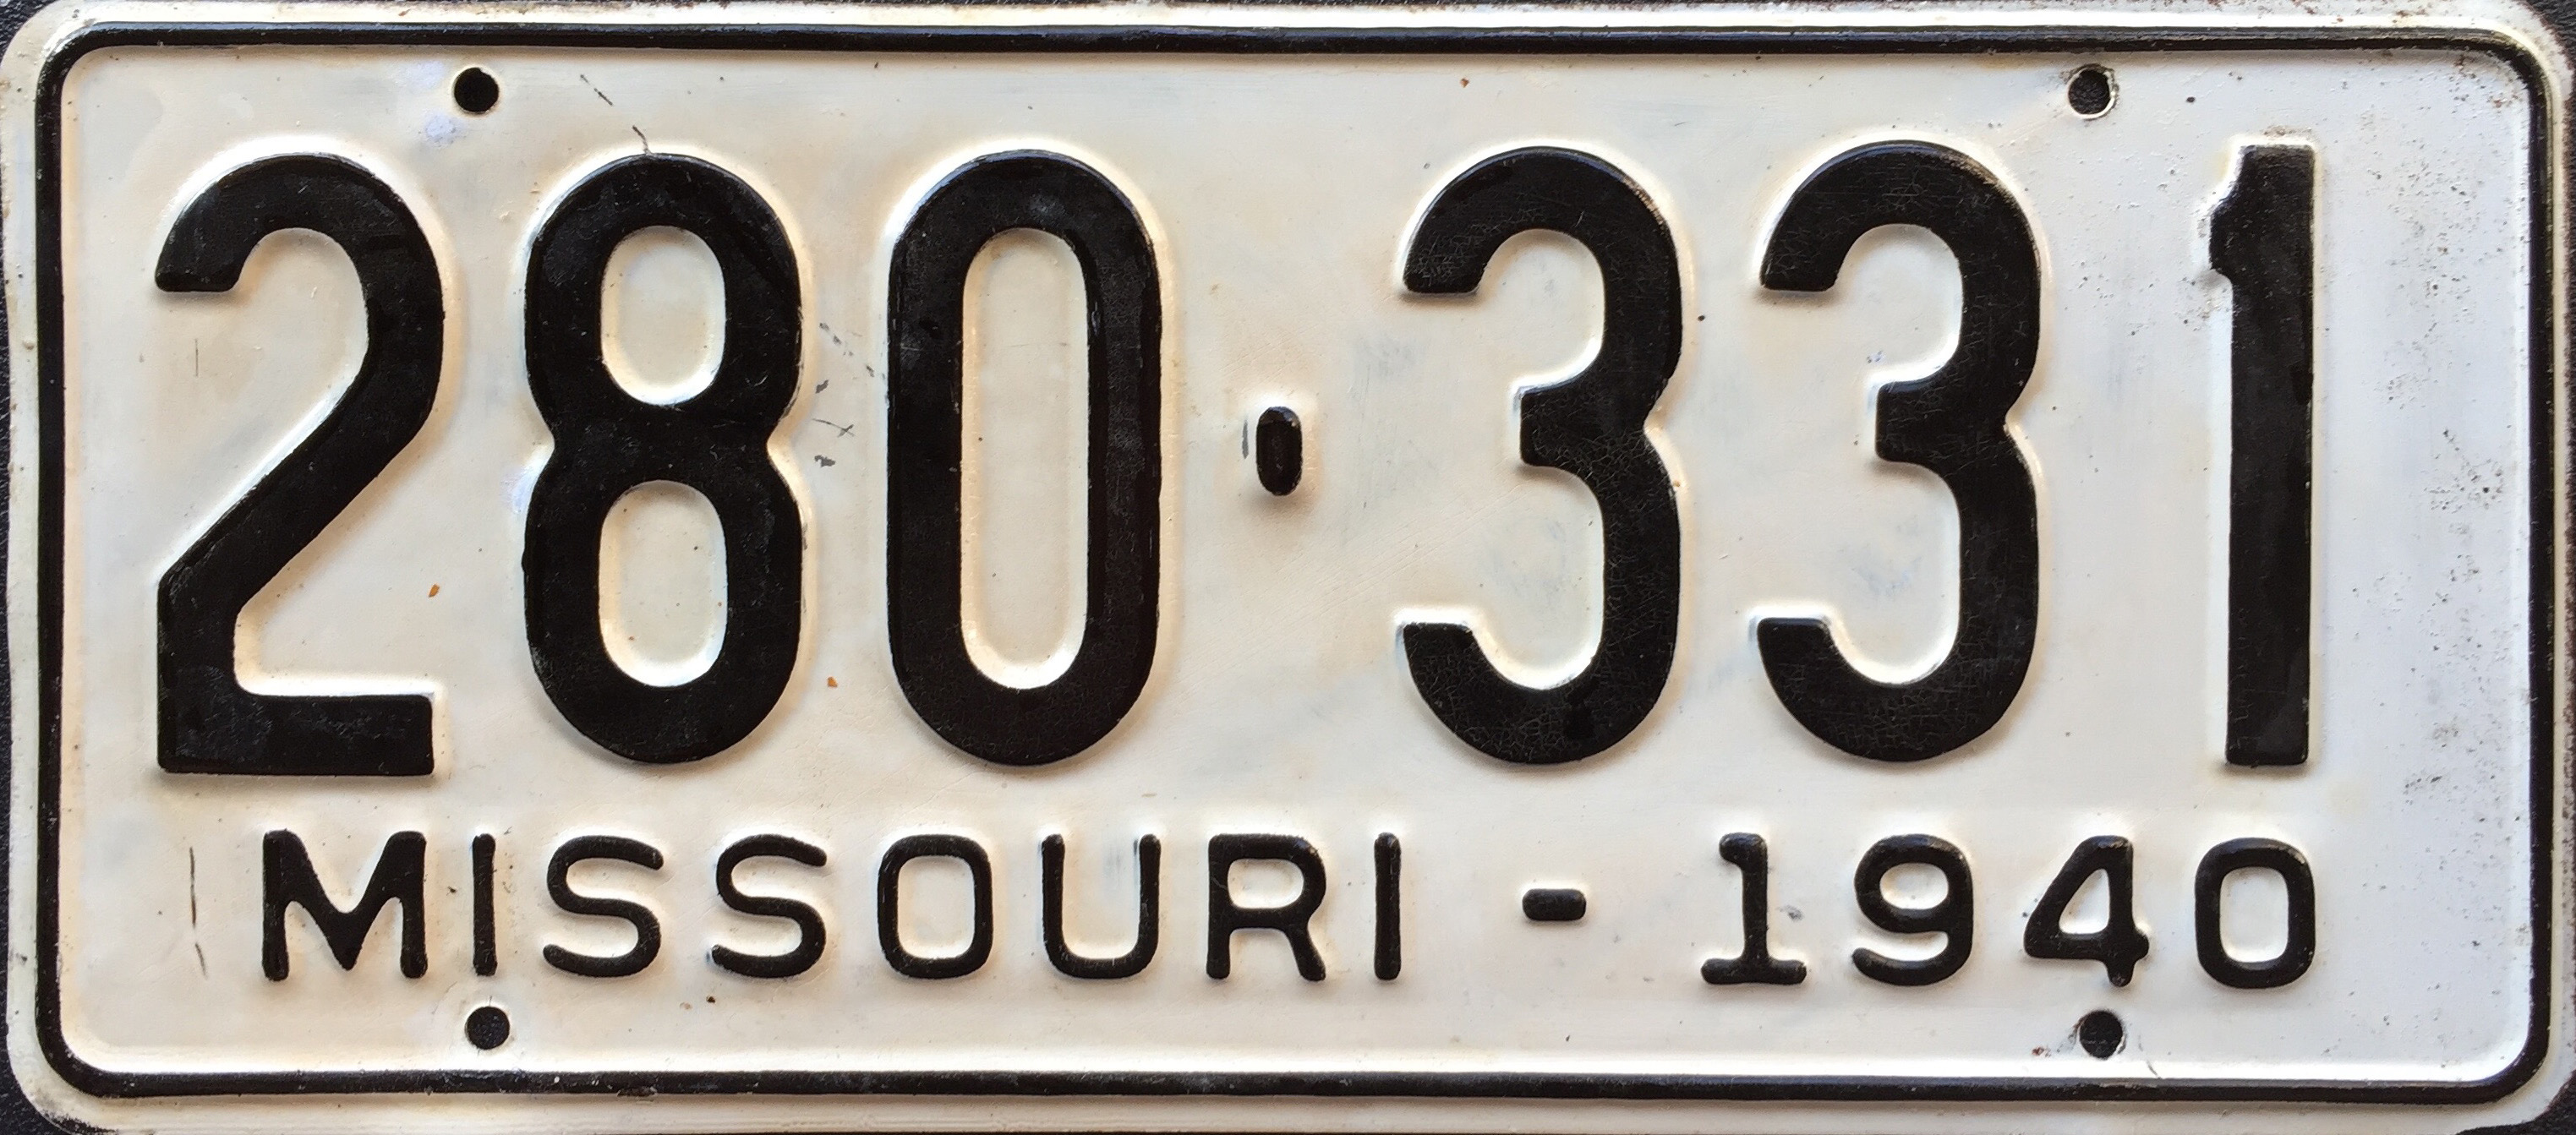 Missouri License Plate Renewal Online Property Tax Not Found